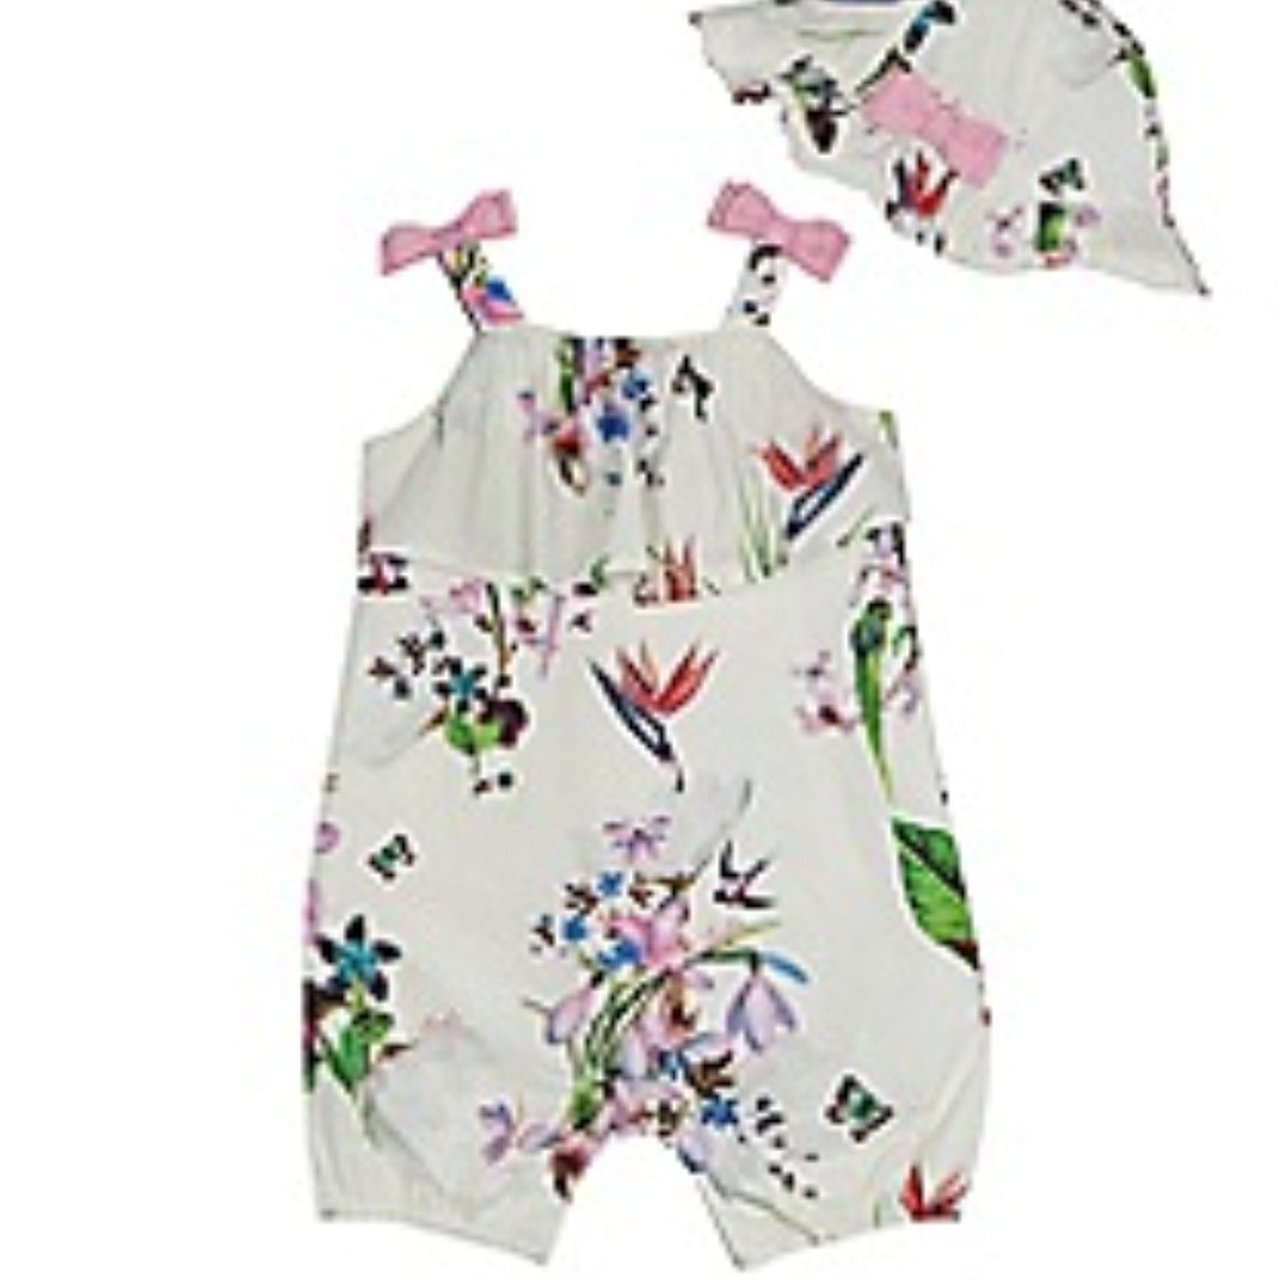 b5407d250ca Baby girl Ted baker floral romper with matching hat 3-6 once - Depop